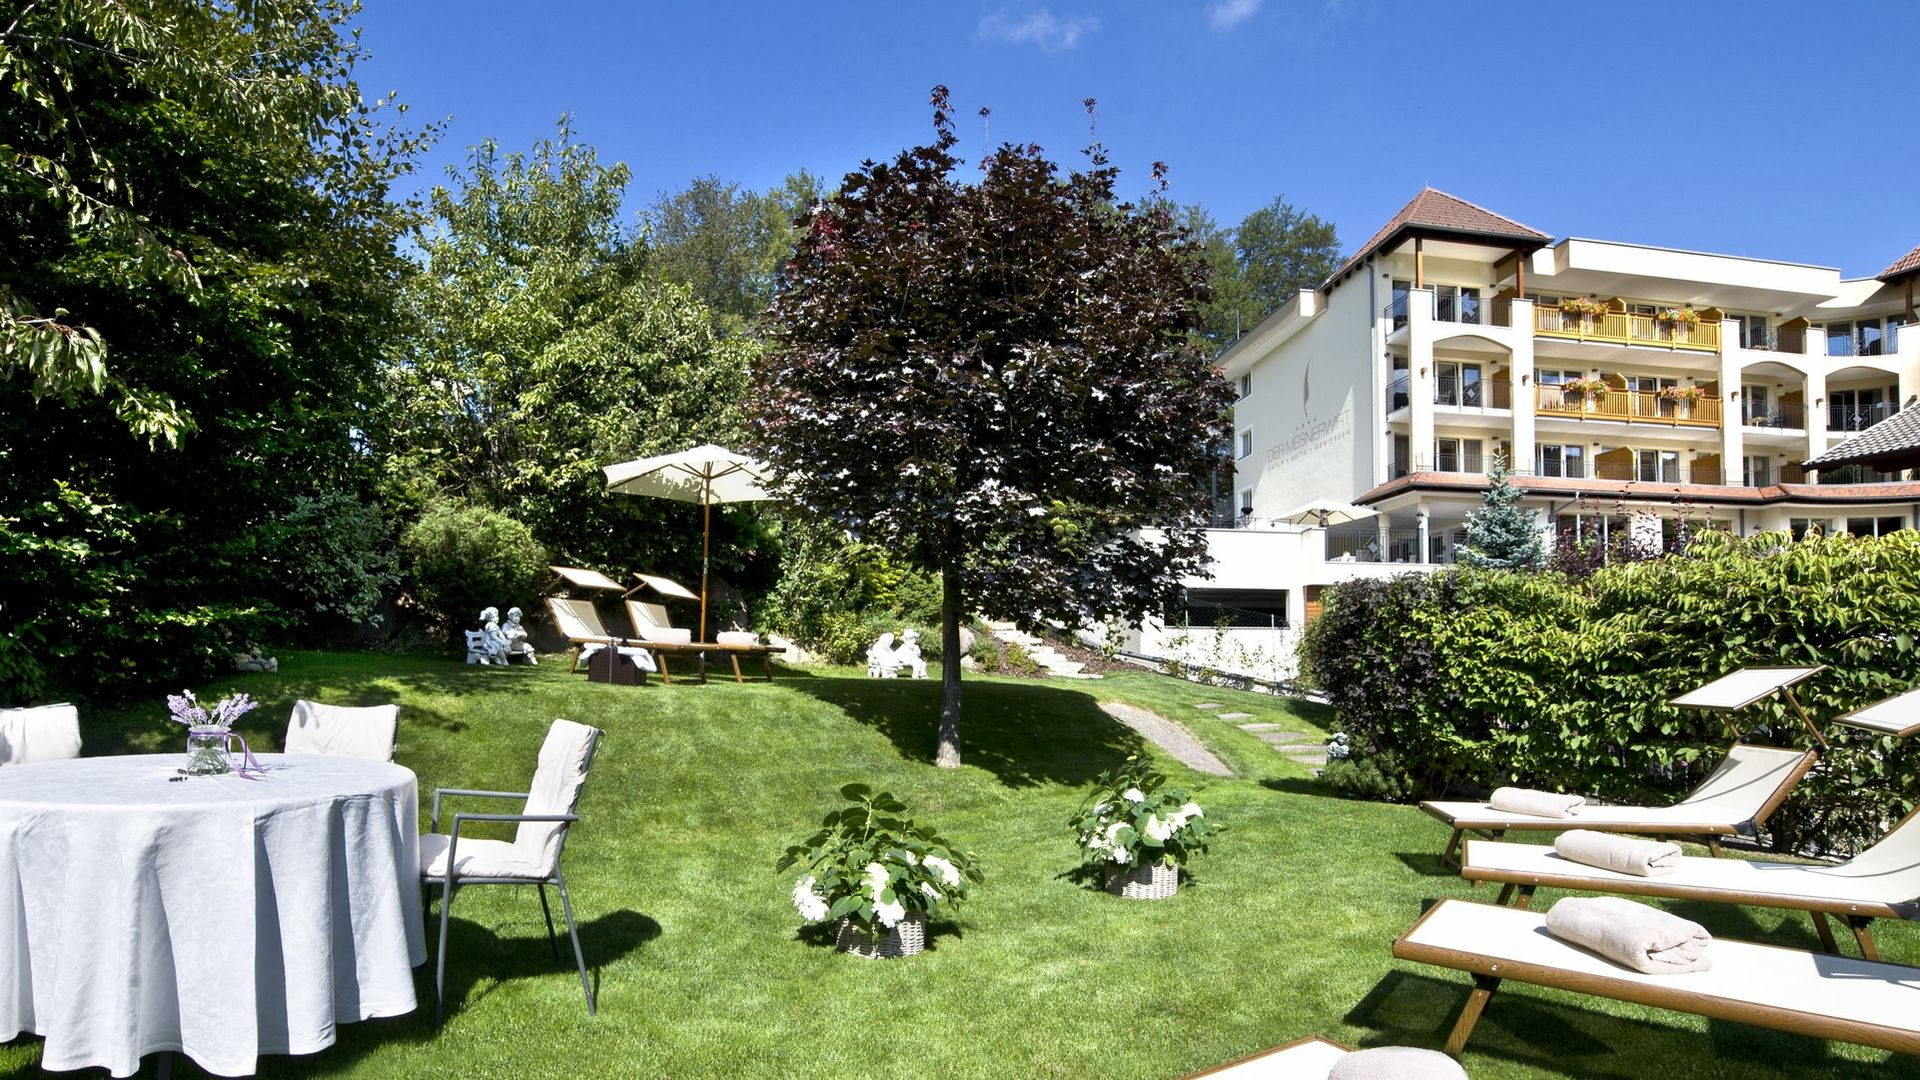 Holiday In South Tyrol In The Hotel With Garden In Merano.